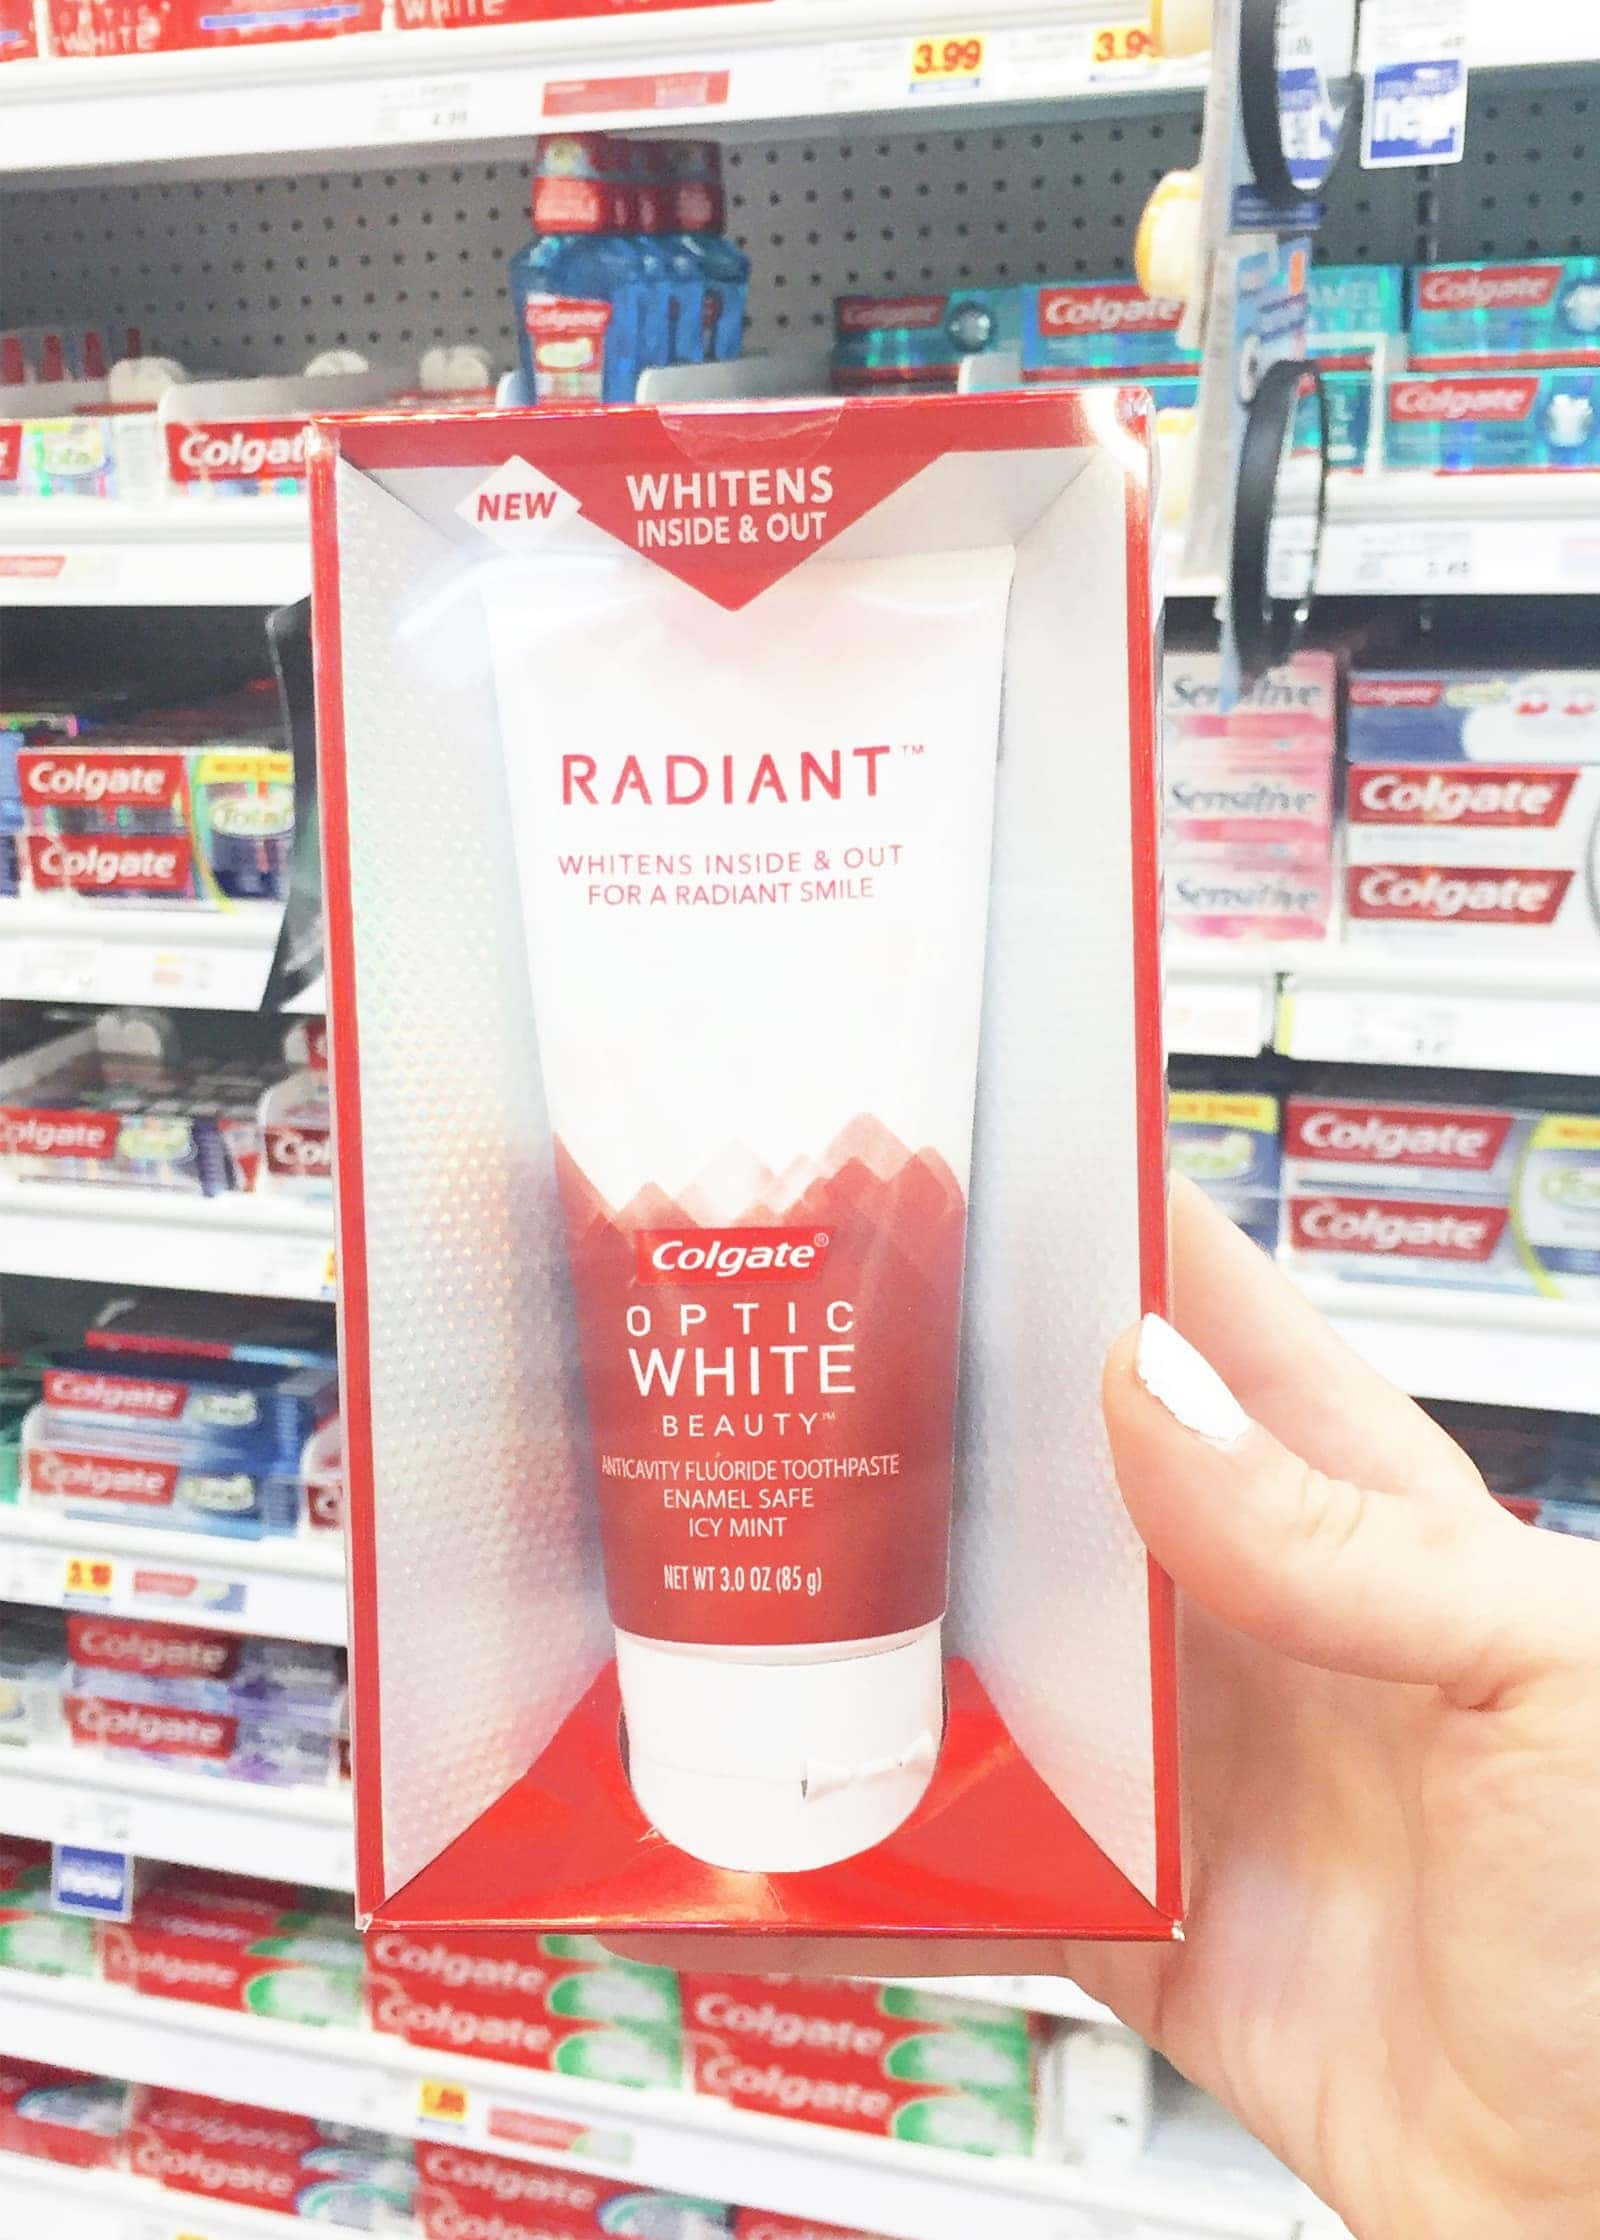 Colgate radiant white on aisle at Kroger